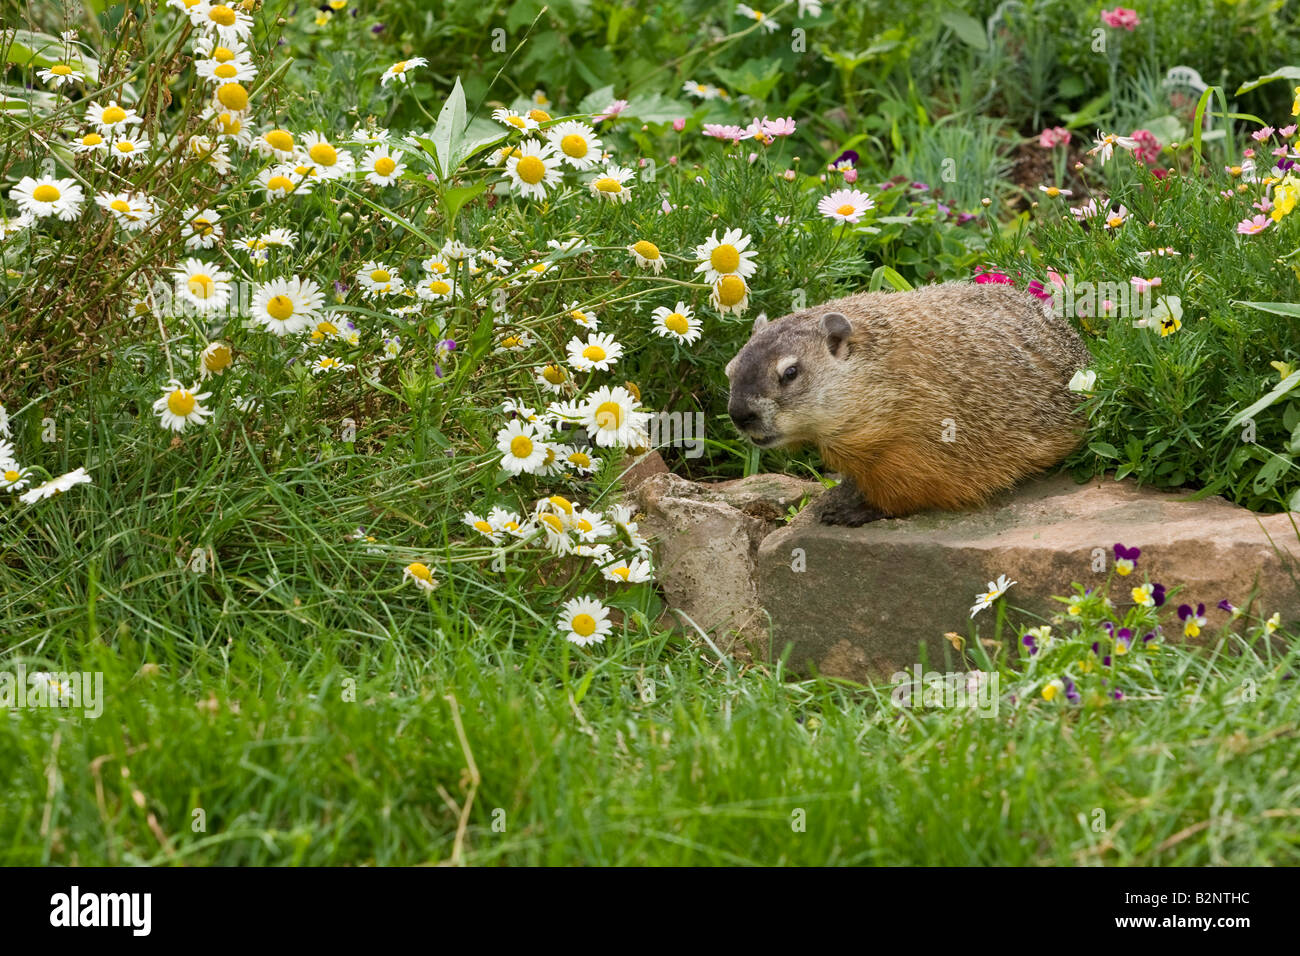 Woodchuck (Marmota monax) in flower garden - Stock Image